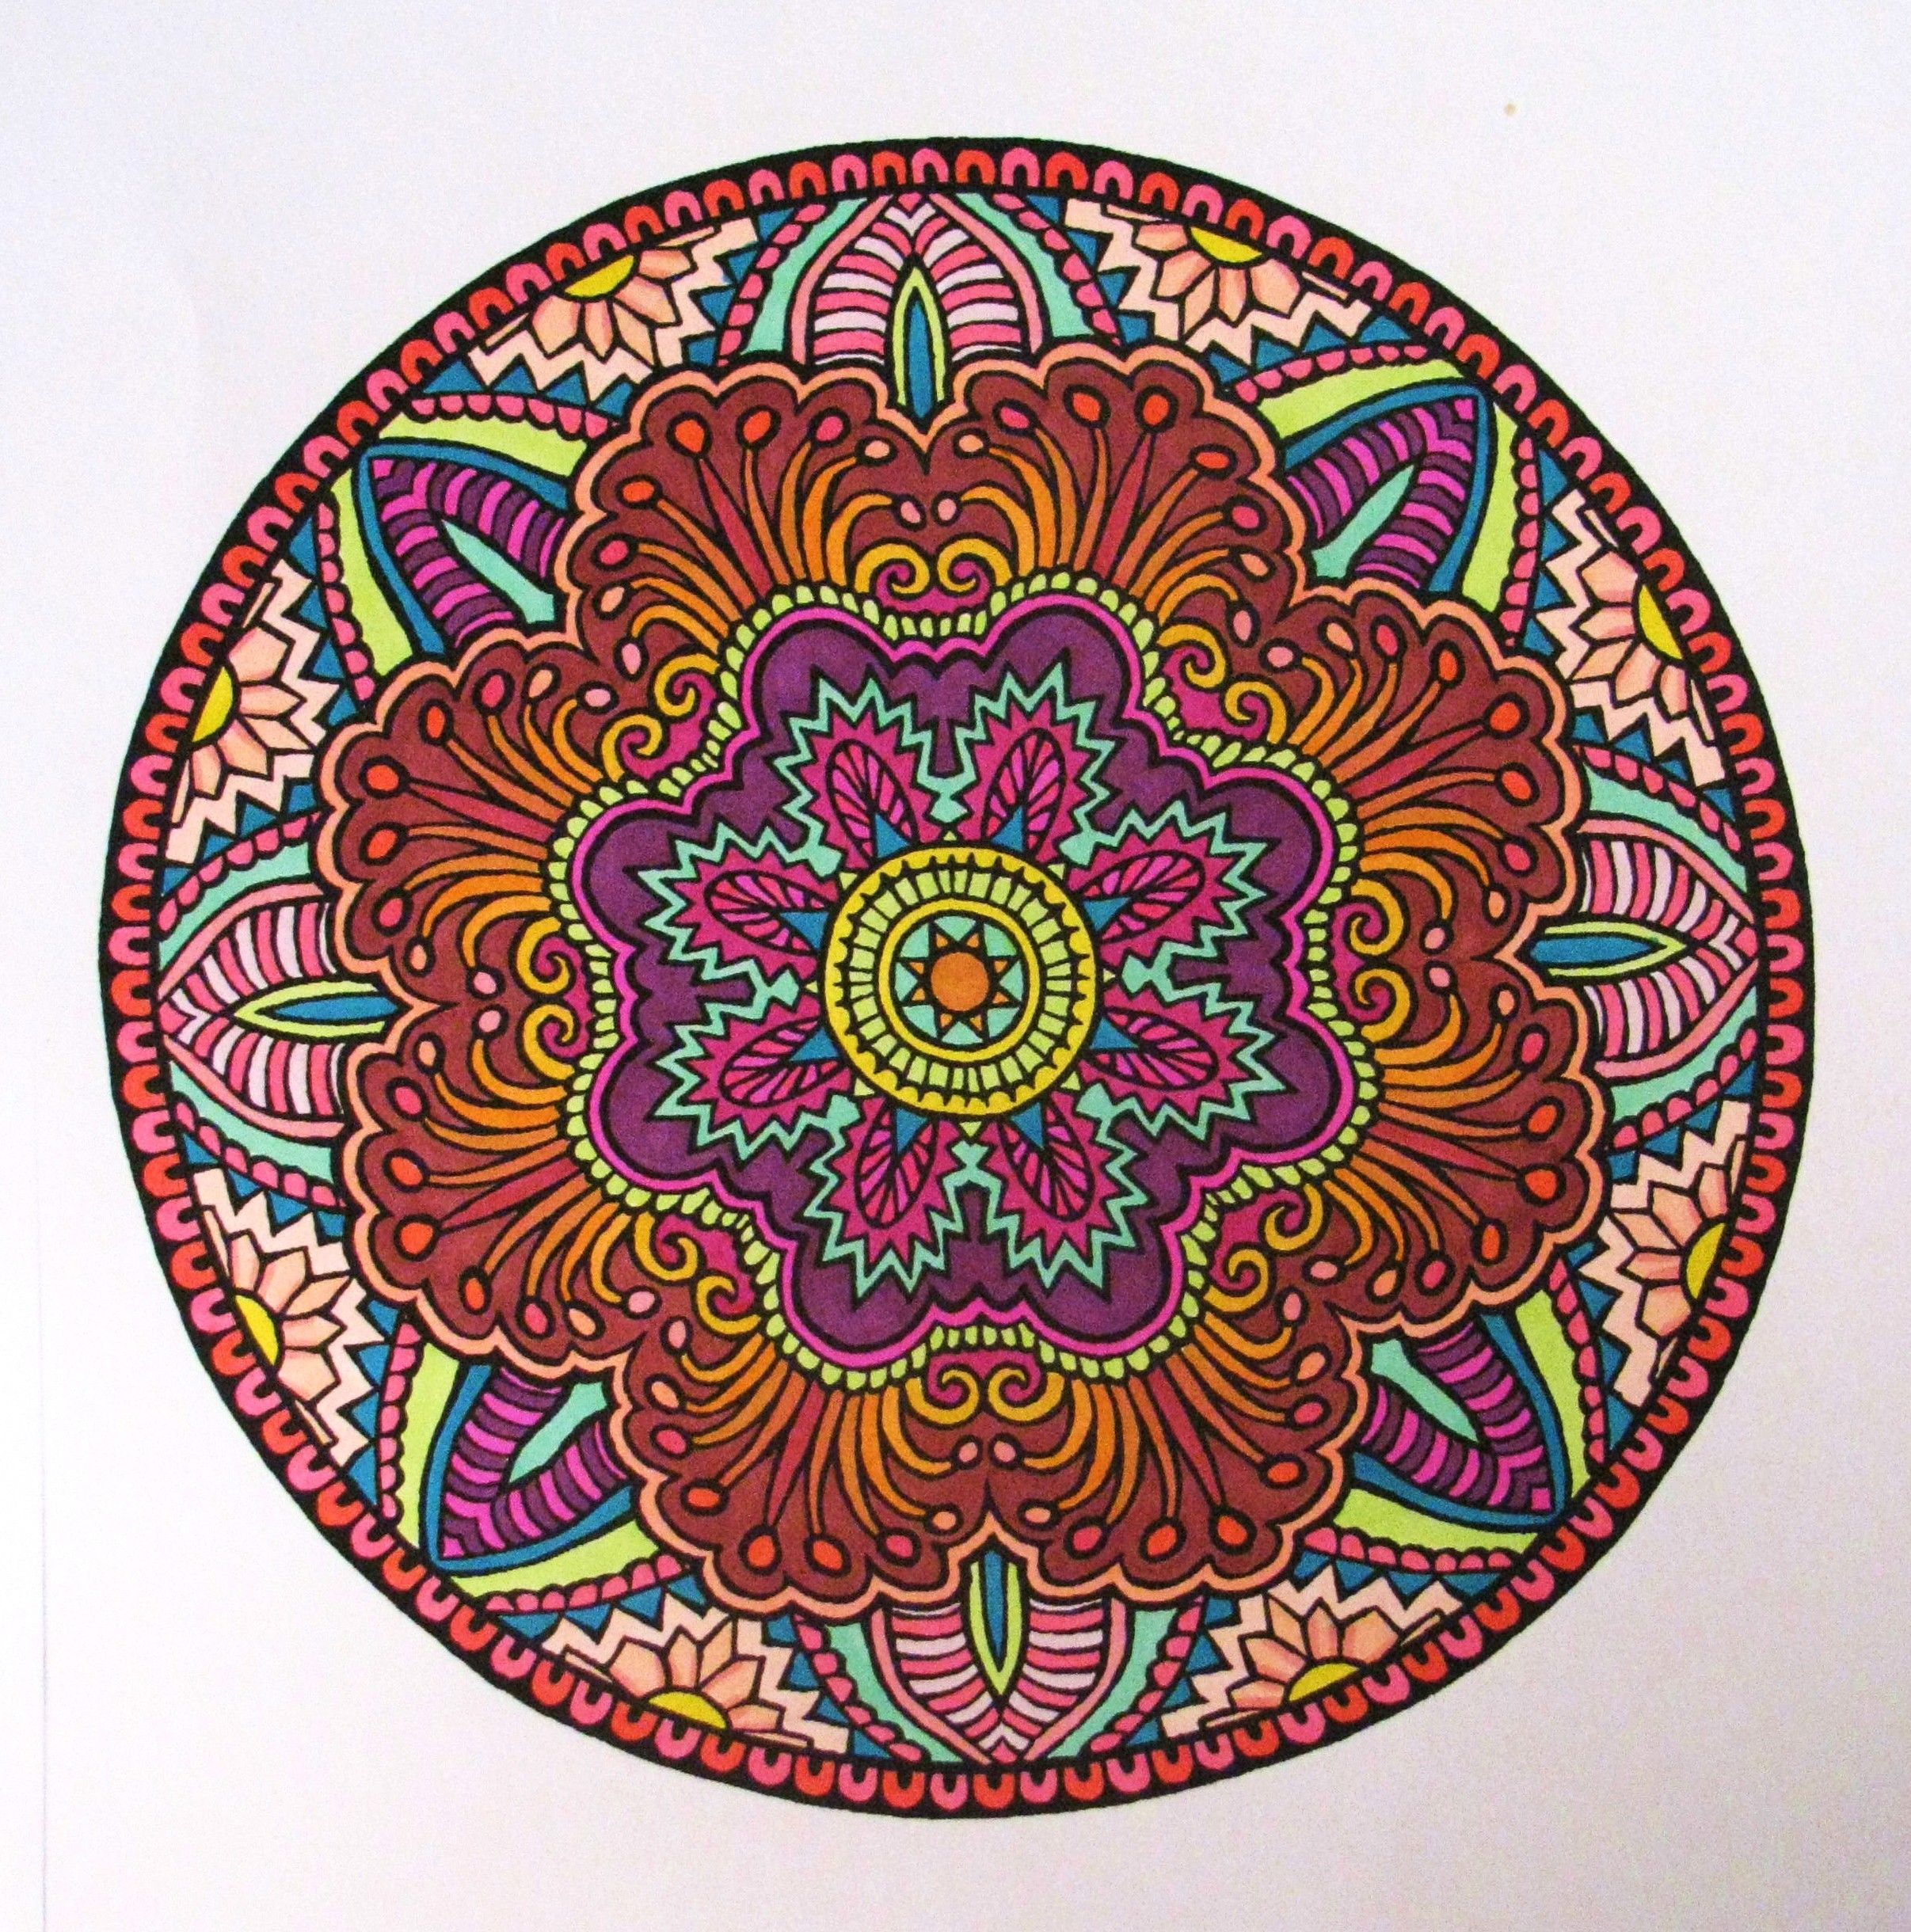 Mystic Mandala Coloring Book From Dover Mandala Coloring Books Mandala Coloring Hamsa Art